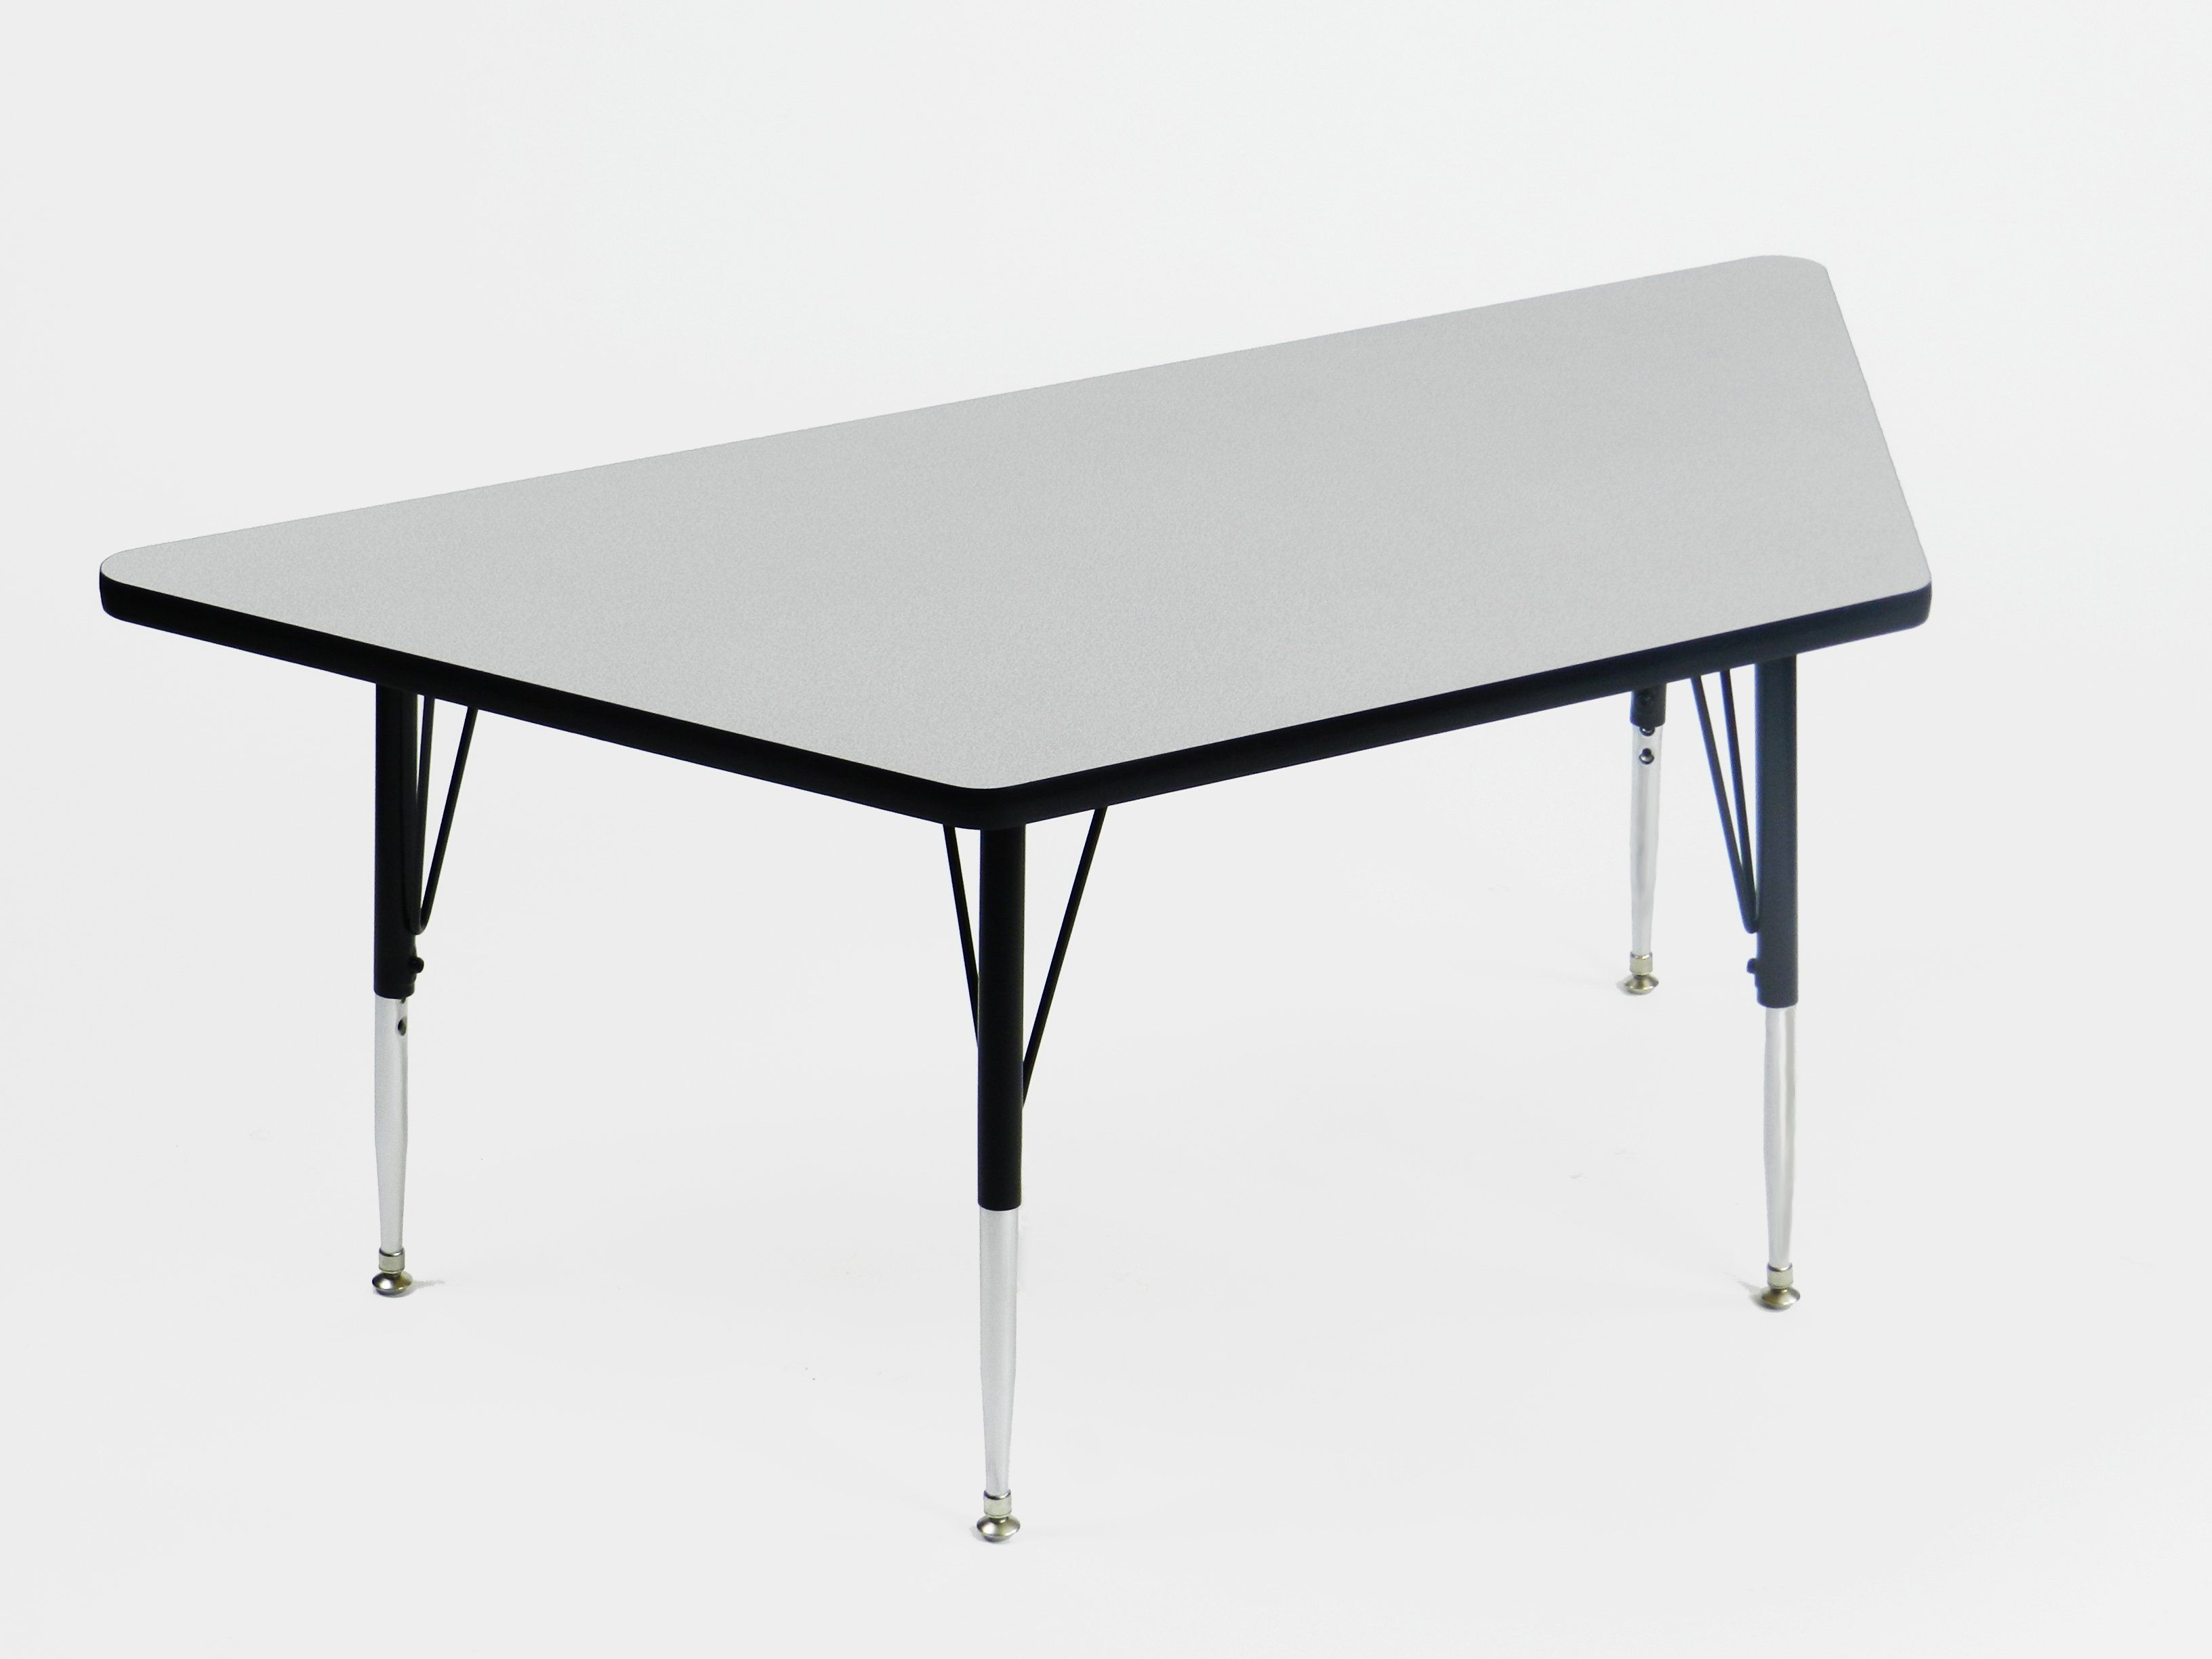 Correll EconoLine Melamine Top Short Leg Adjustable Height Activity Table - Trapezoid - 30x60 in. - AM3060-TRPS